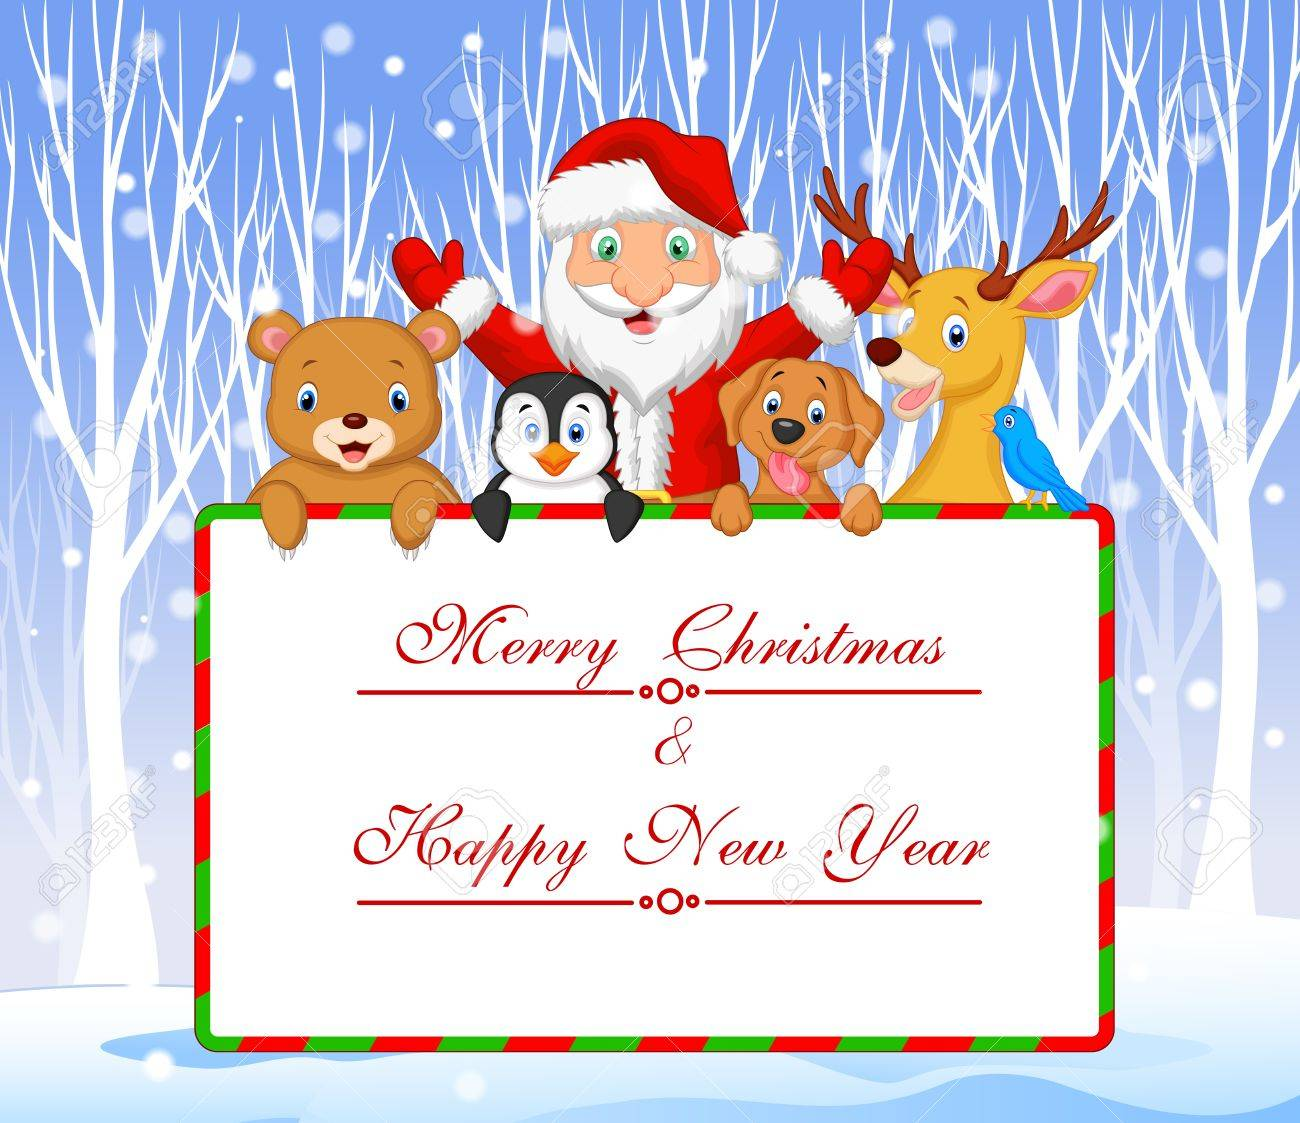 Vector Illustration Of Cartoon Santa And Friend Holding Christmas